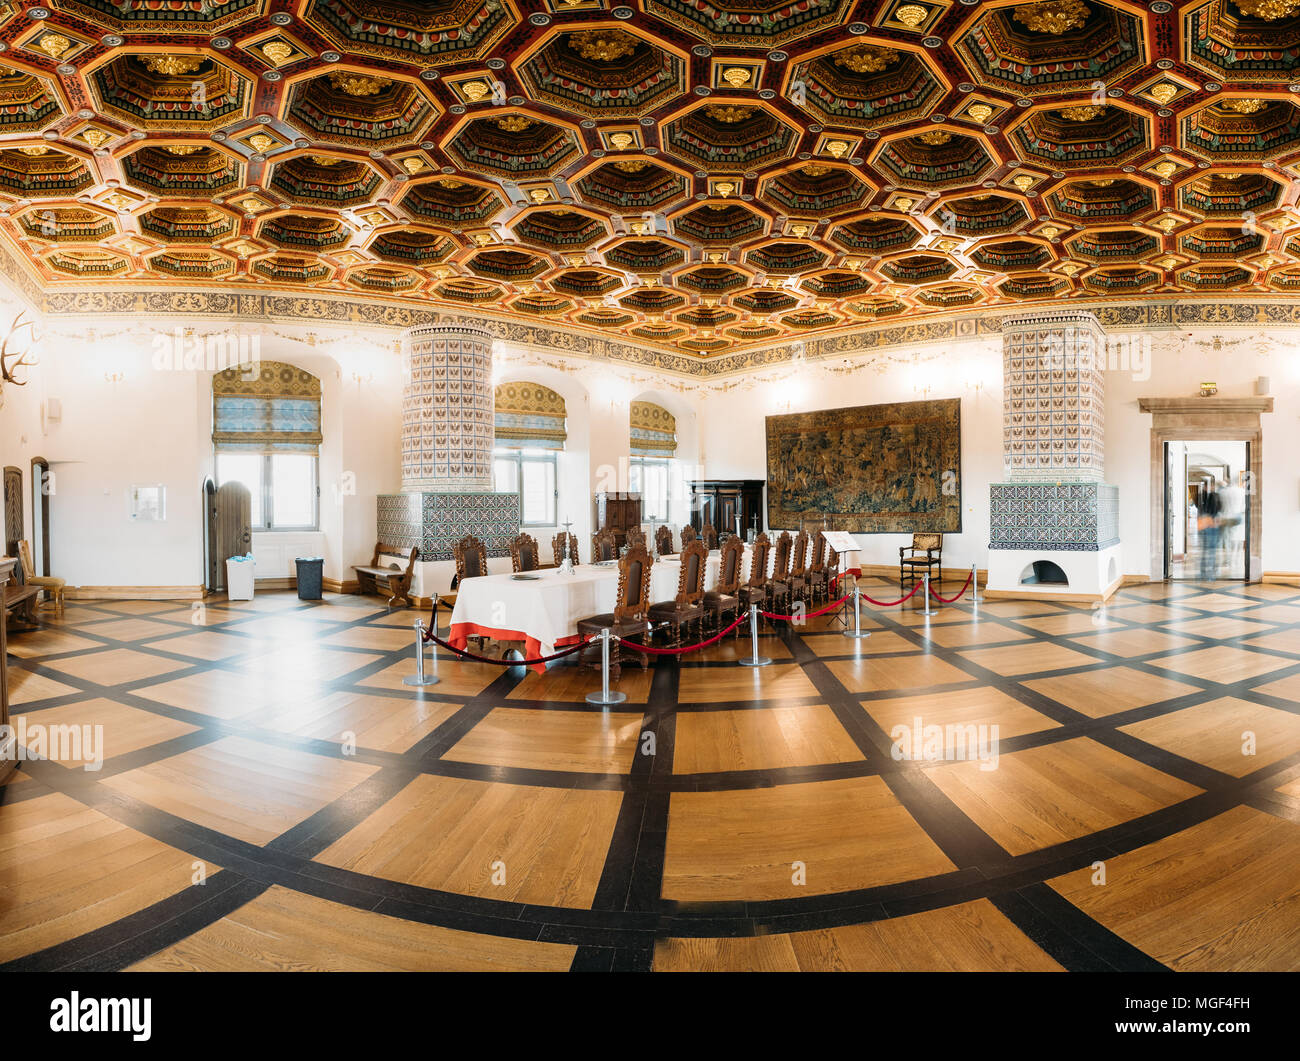 Mir, Belarus - September 1, 2016: Exposition The Dining Room Izba In Castle Complex Museum. Famous Landmark, Architectural Ensemble Of Feudalism, Anci - Stock Image